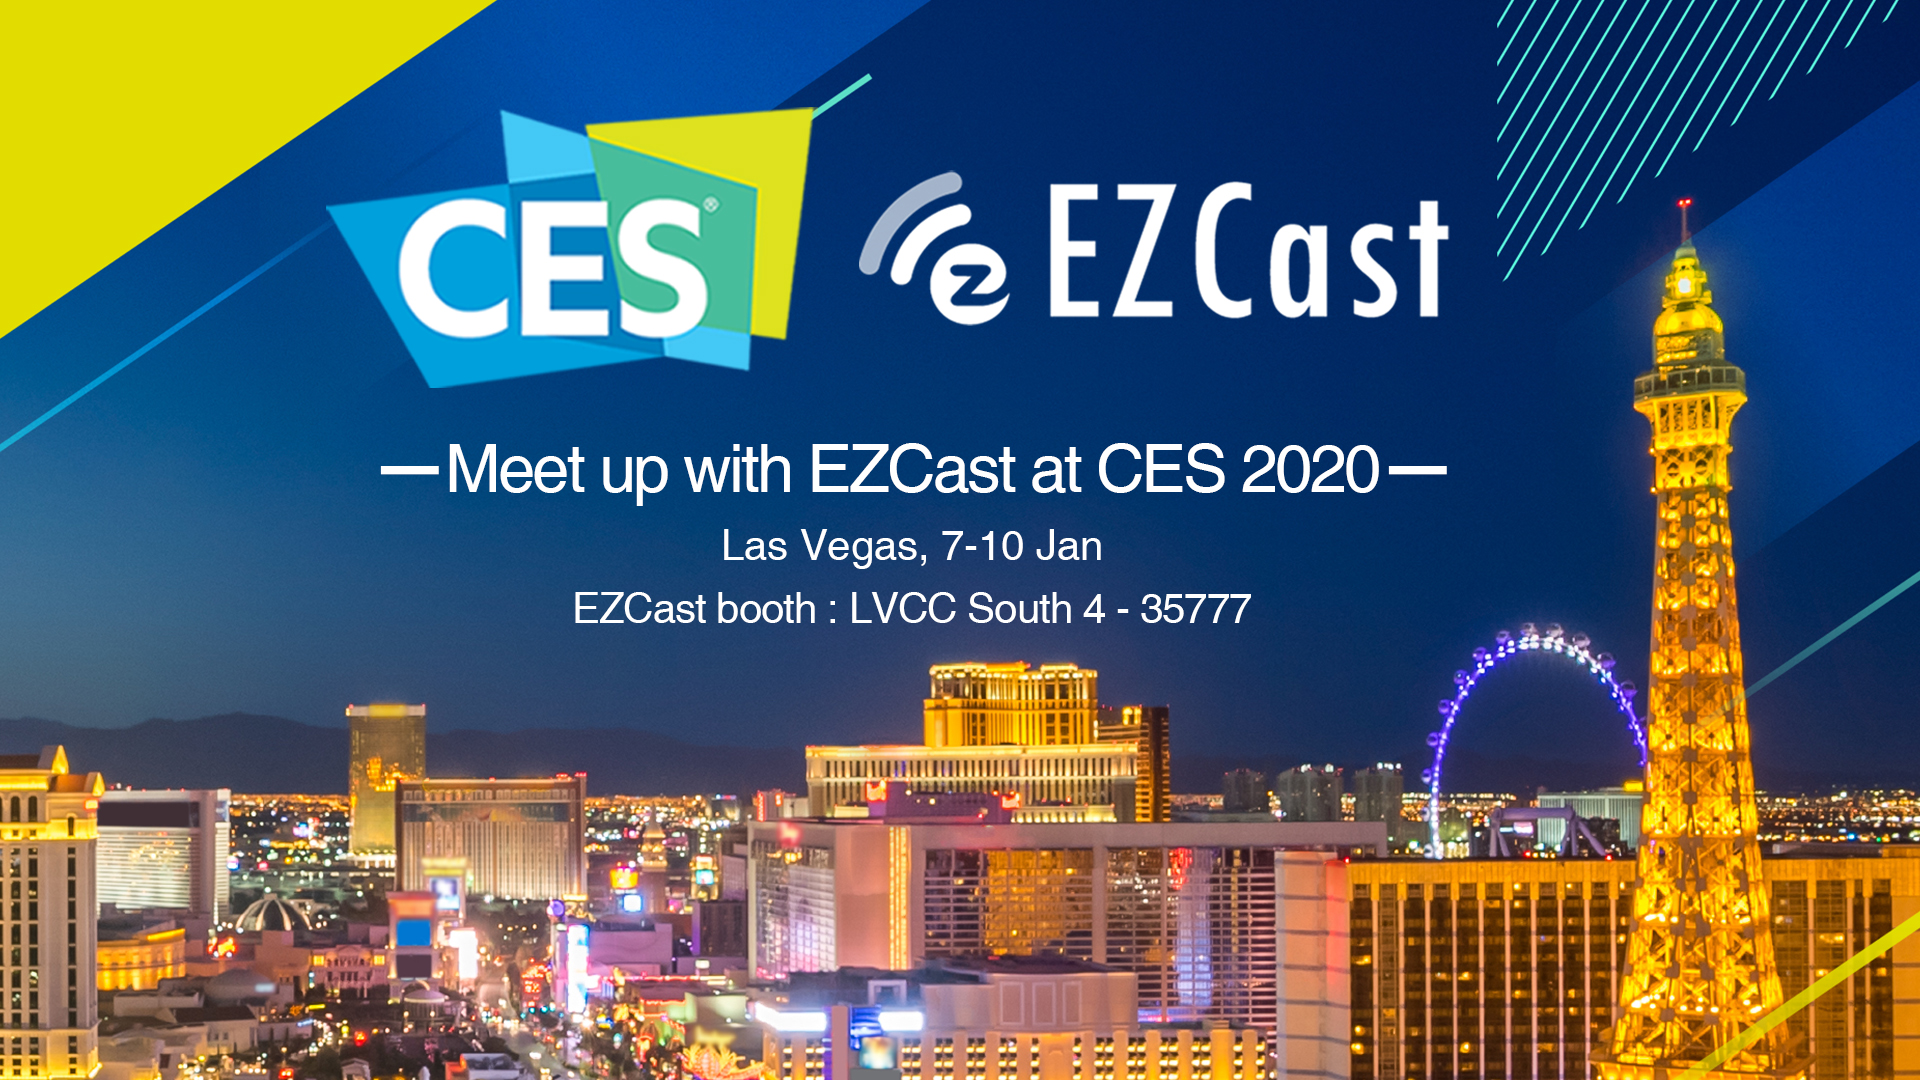 EZCast Demos the EZCast MagicLink and EZCast Ultra at CES 2020